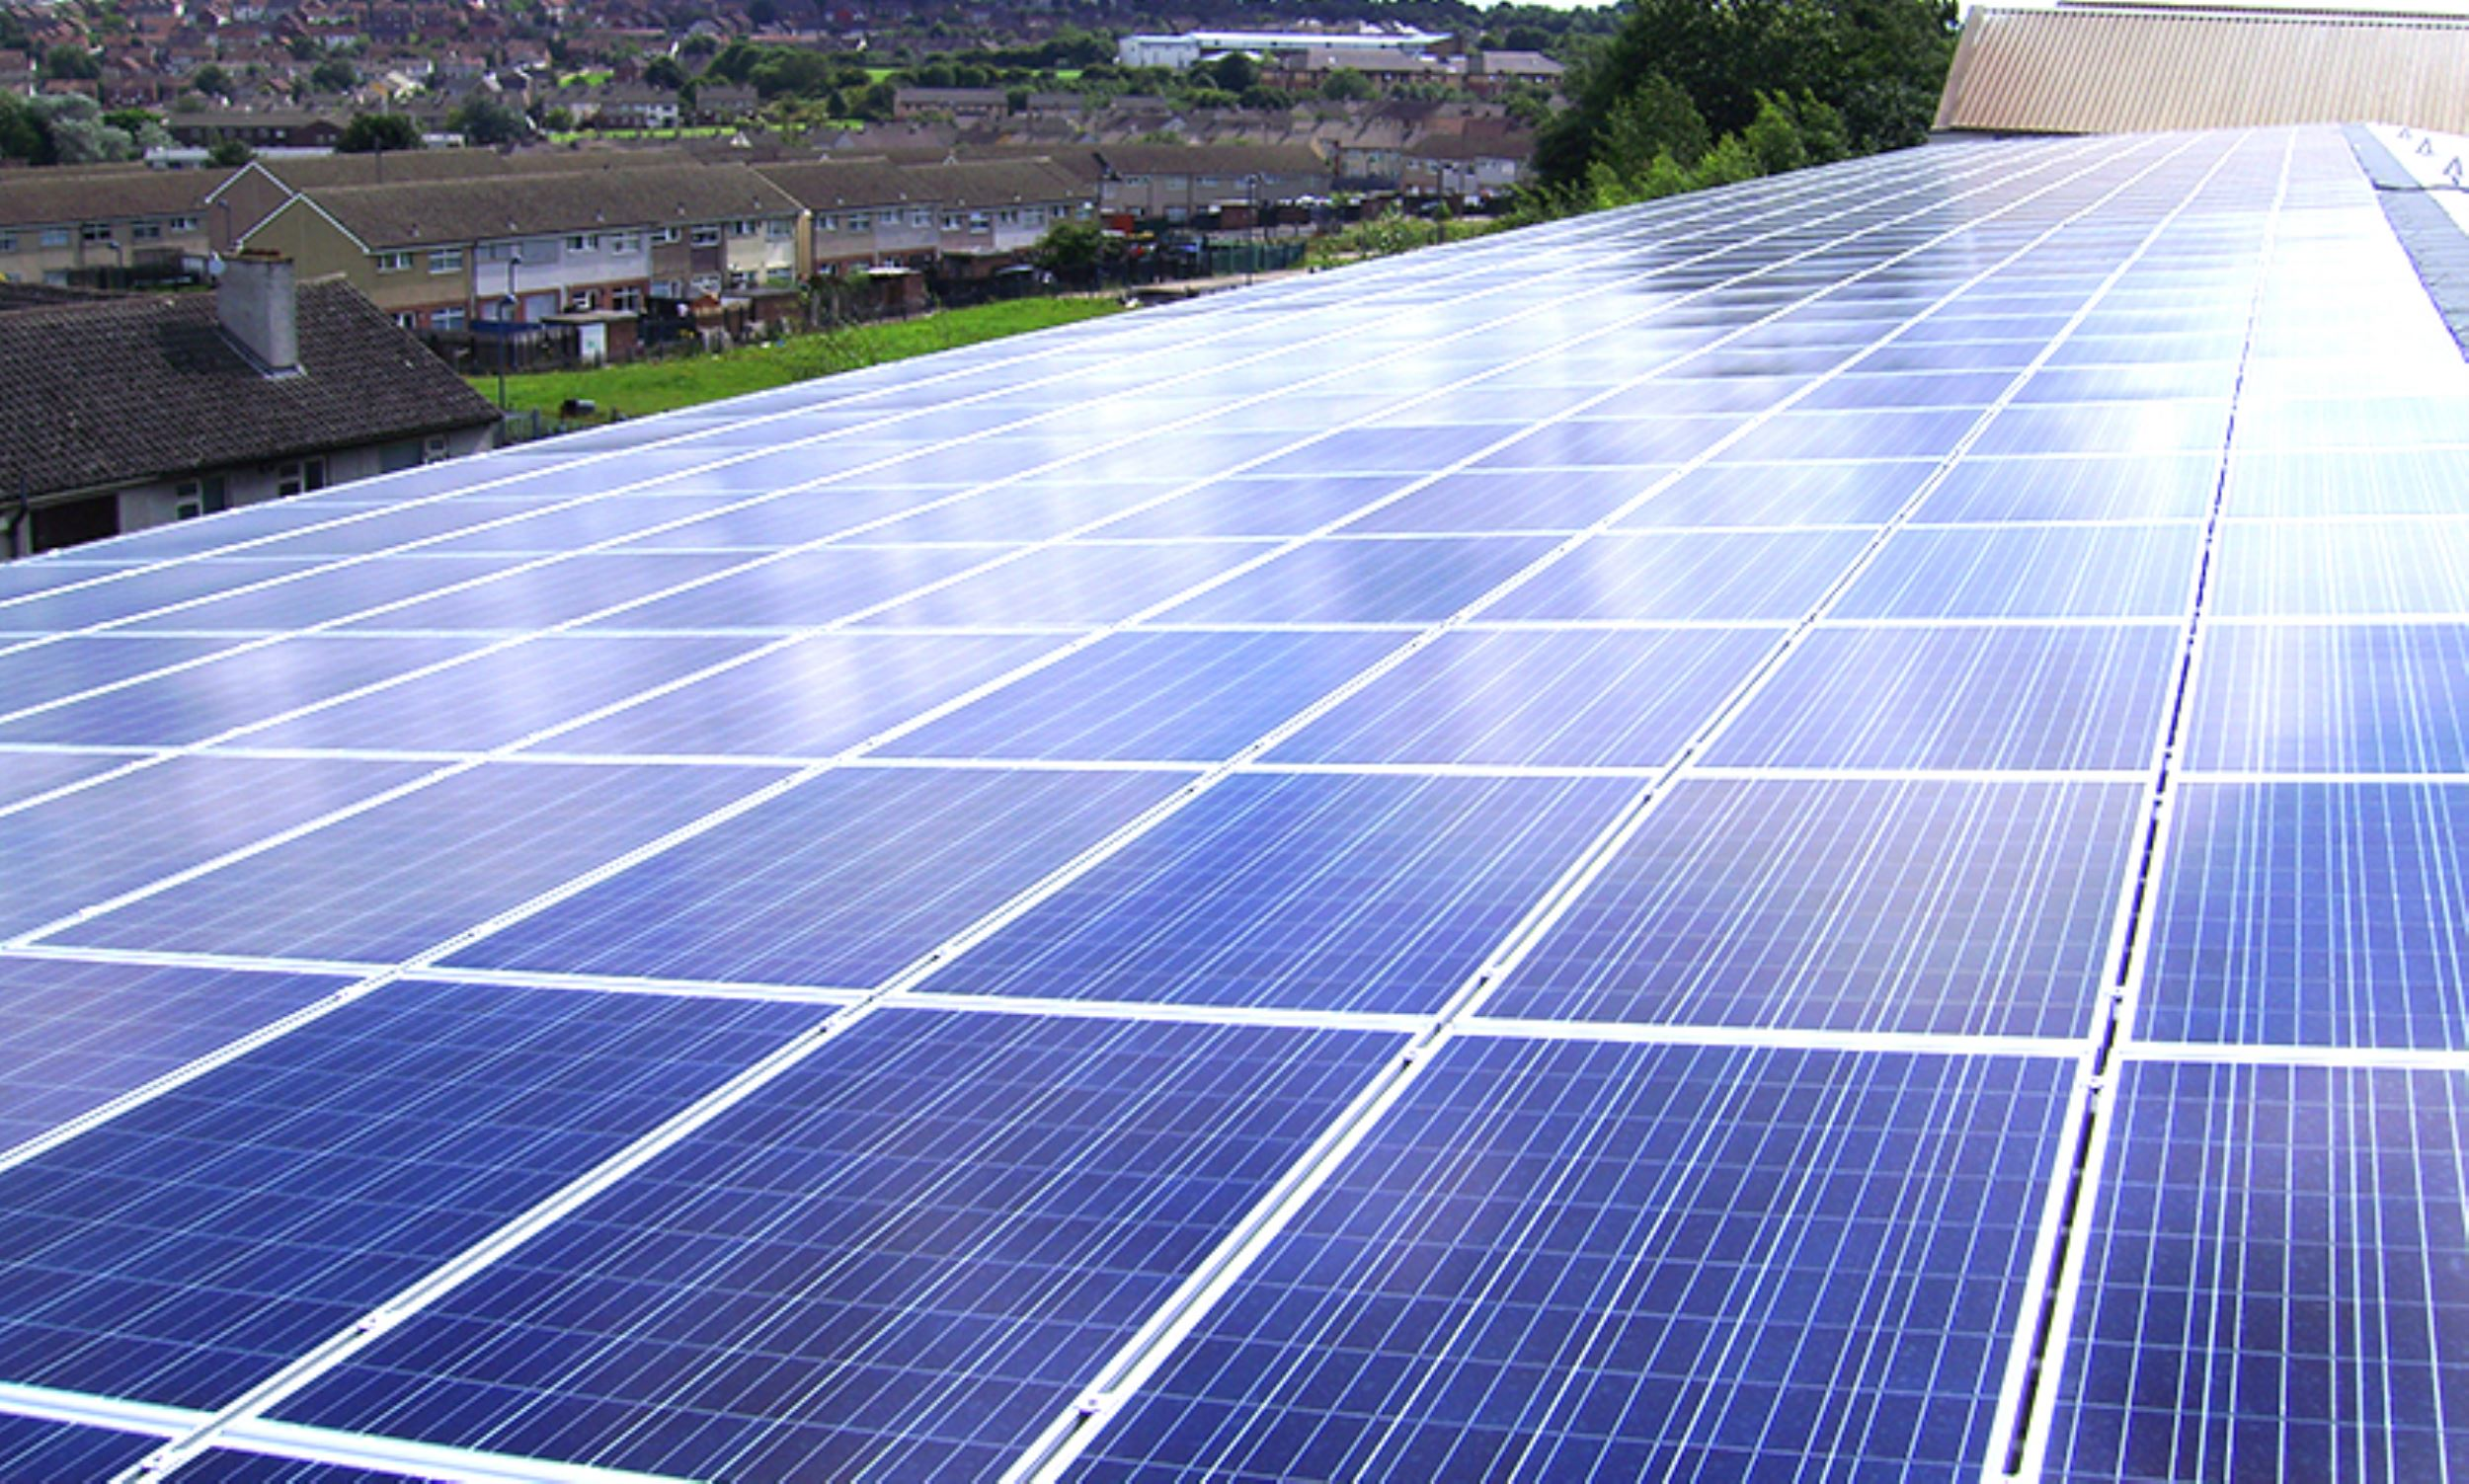 Barrett Steel leads the way in renewable energy with £400,000 solar project